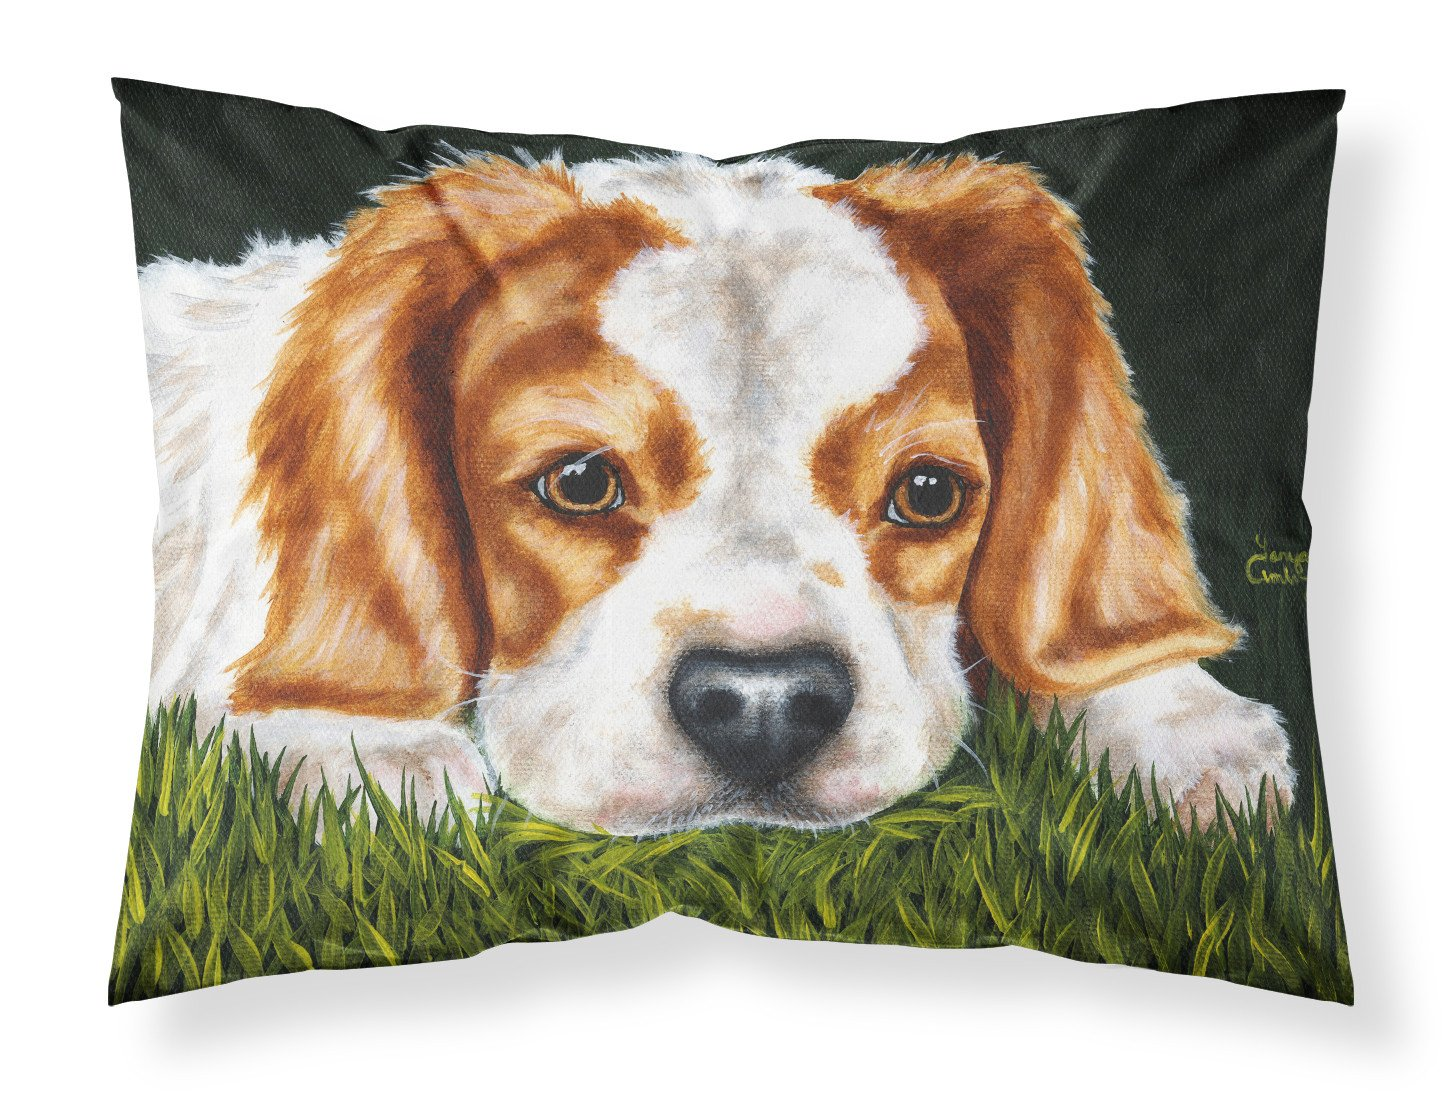 Buy this Cavalier Spaniel in the Grass Fabric Standard Pillowcase AMB1395PILLOWCASE